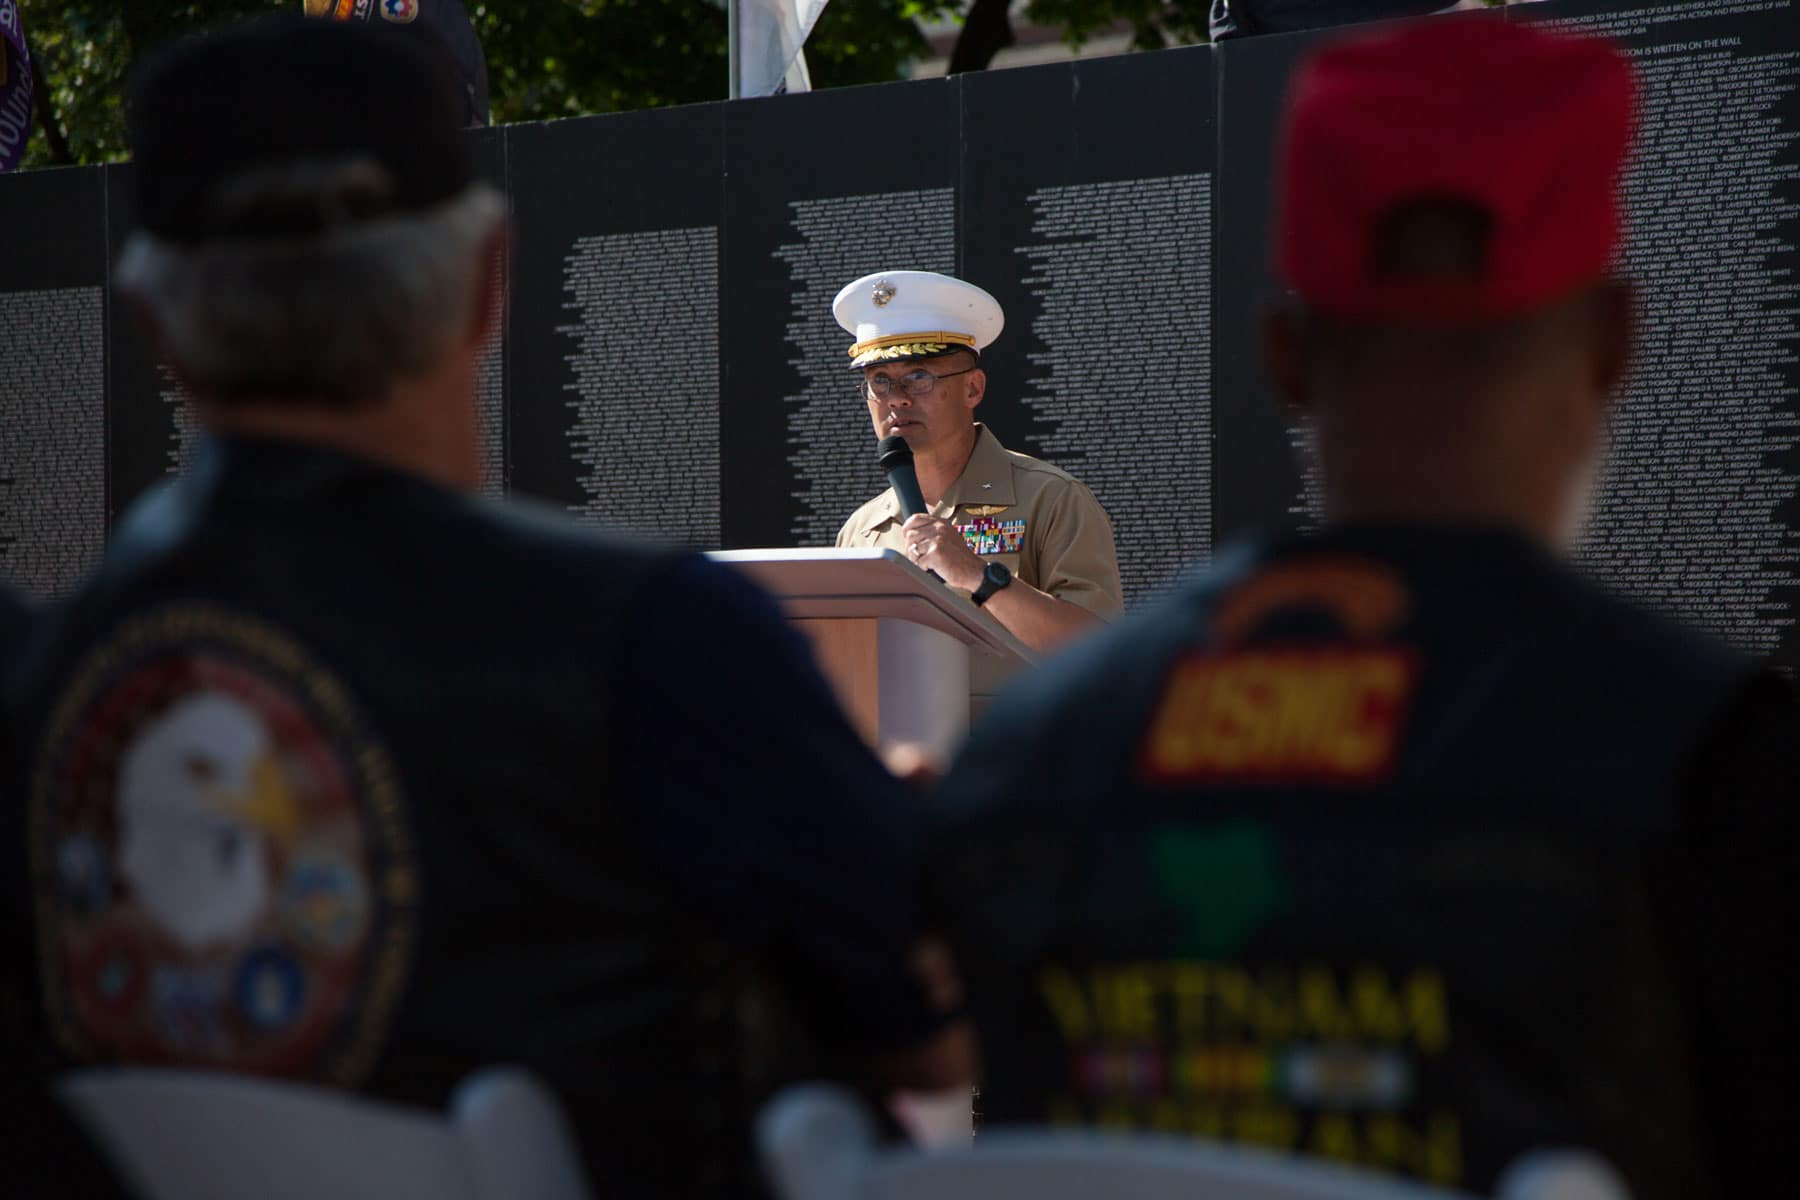 Brigadier General William H. Seely III, Director of the office of Marine Corps communication, speaks at a Vietnam veterans pinning ceremony as part of Marine Week Detroit.